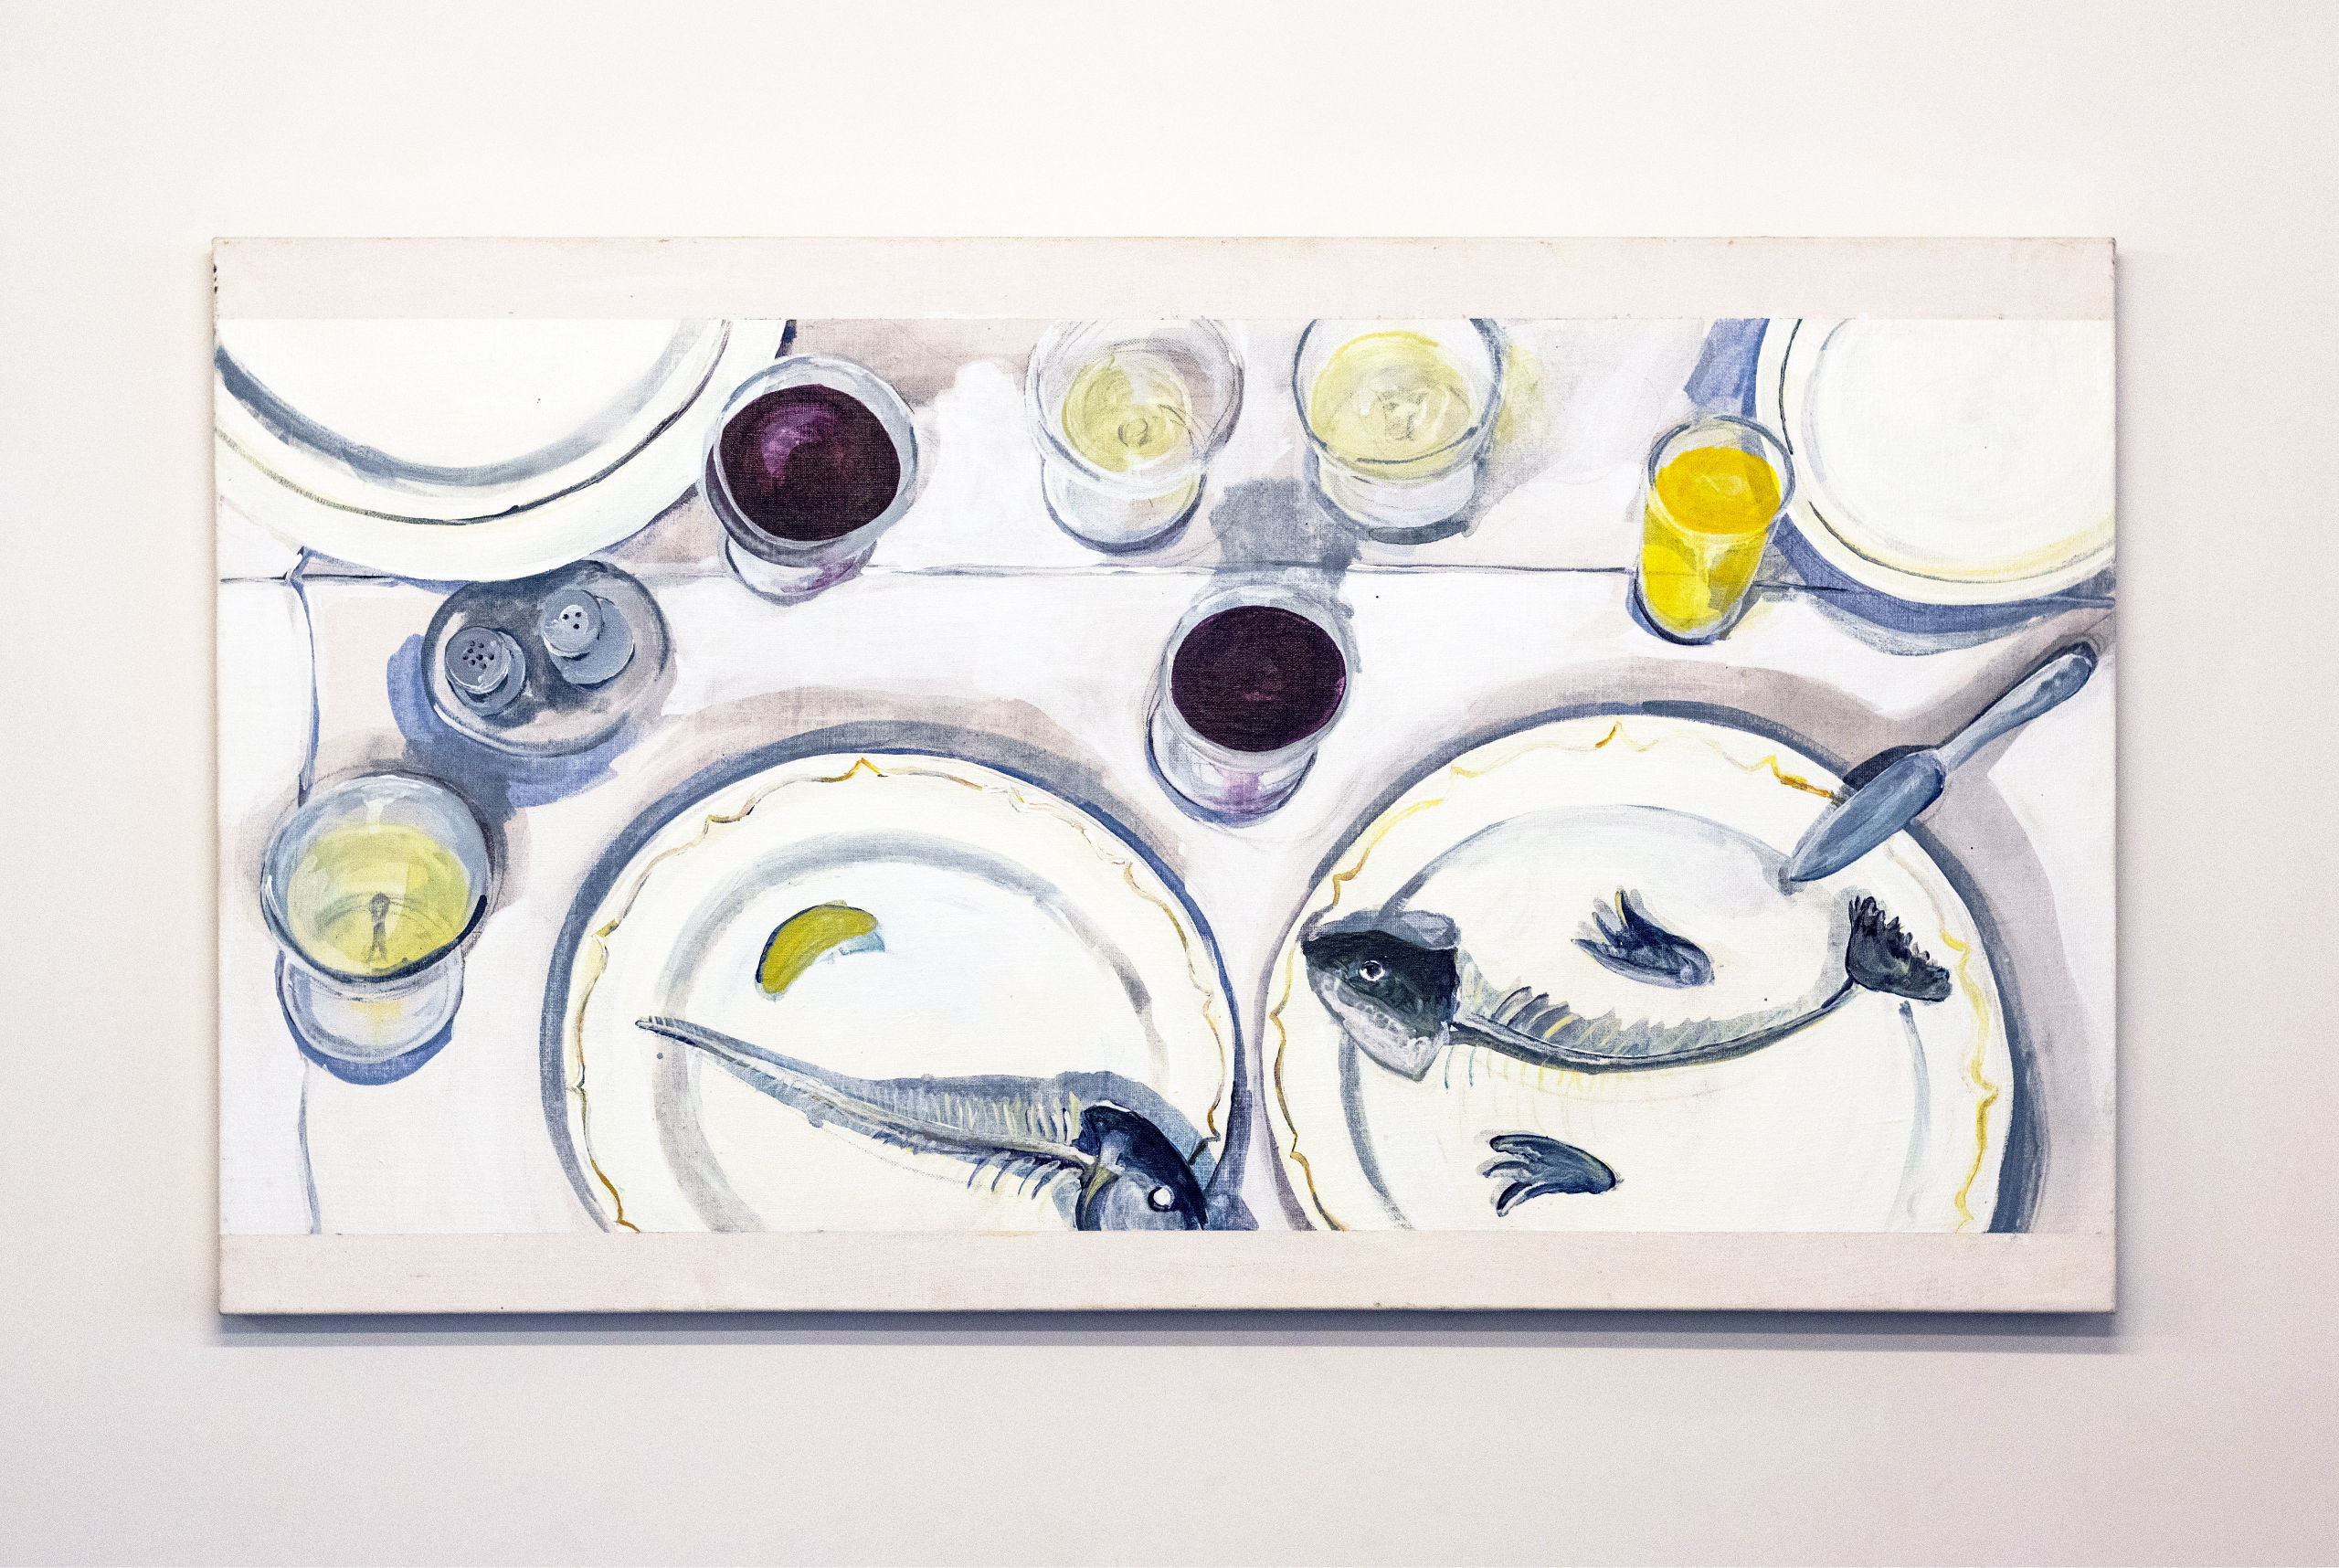 Two plates with fish bones and glasses on table, painting.